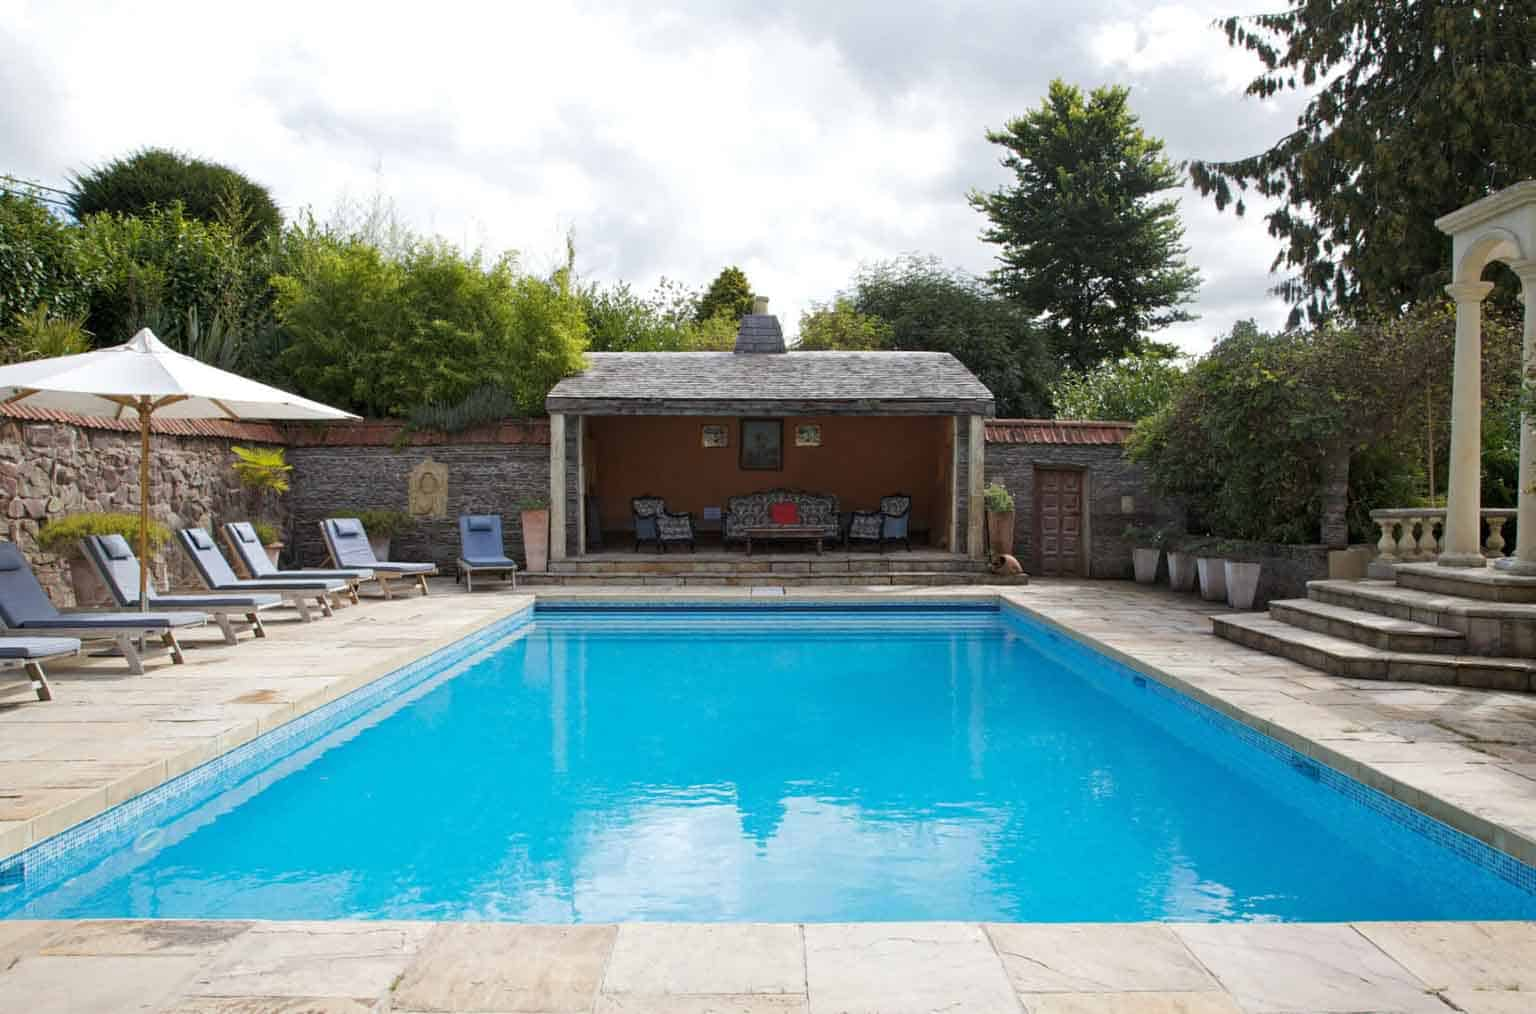 venues with pools and hot tubs